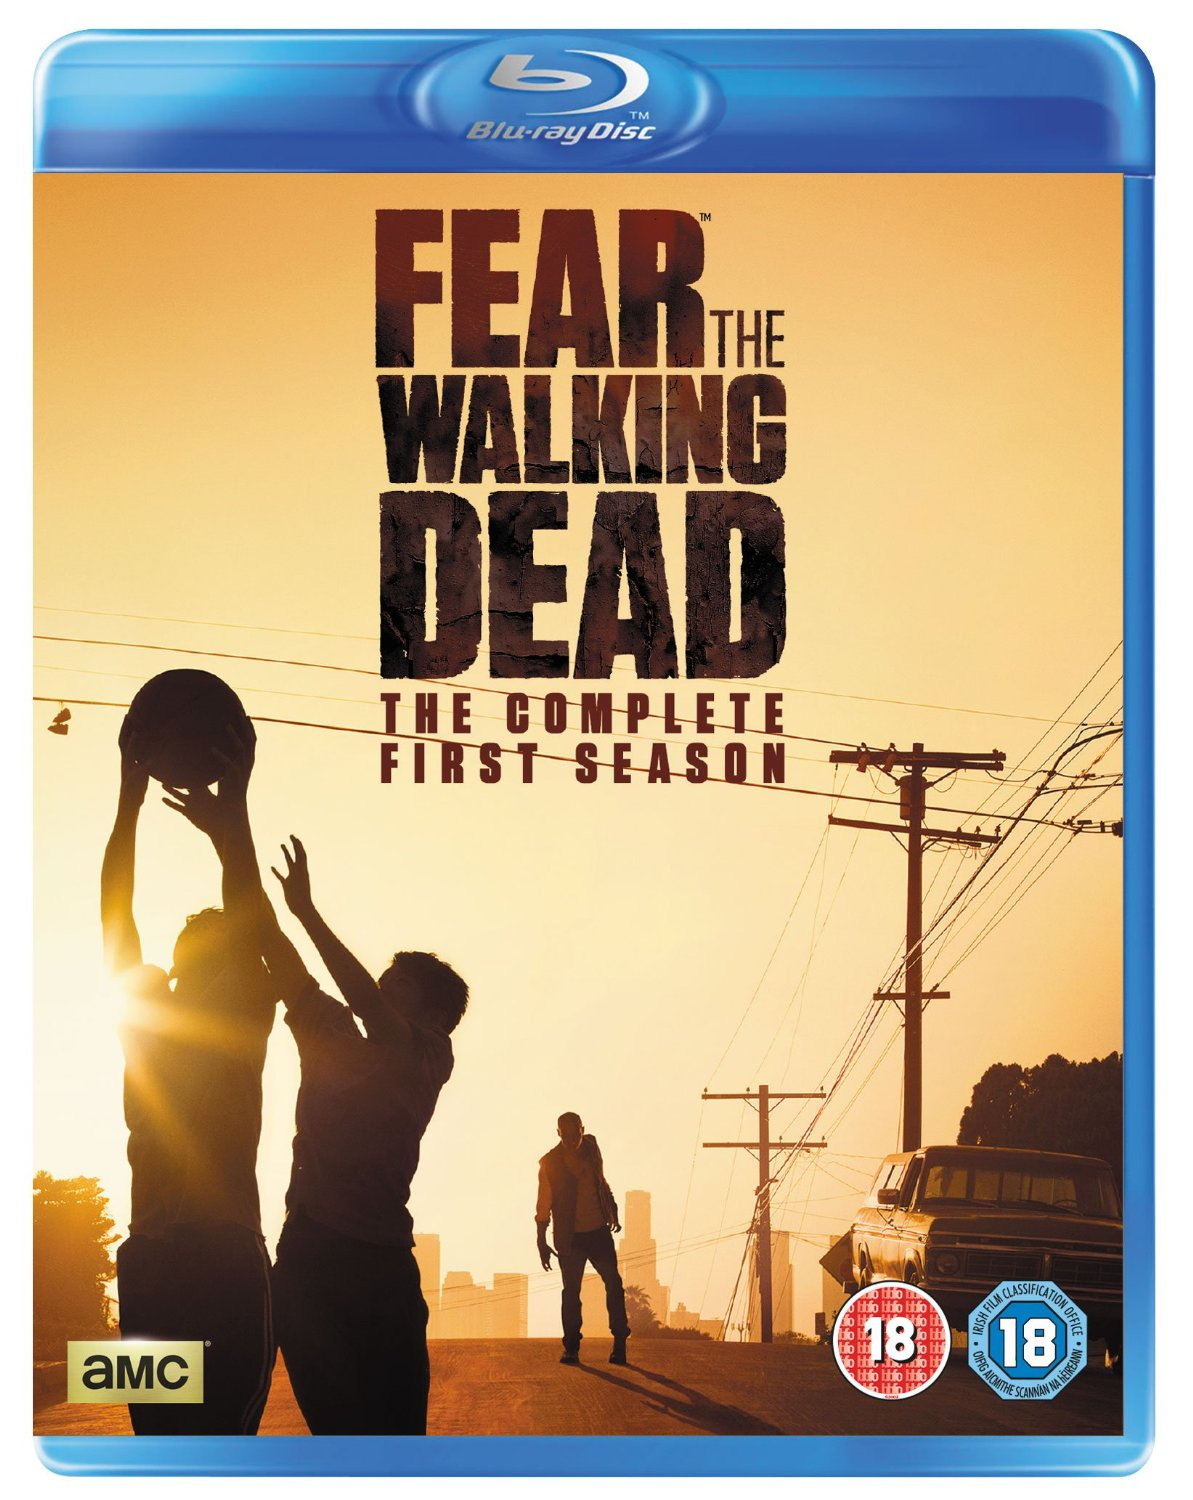 Fear The Walking Dead Season 1 Blu-ray review